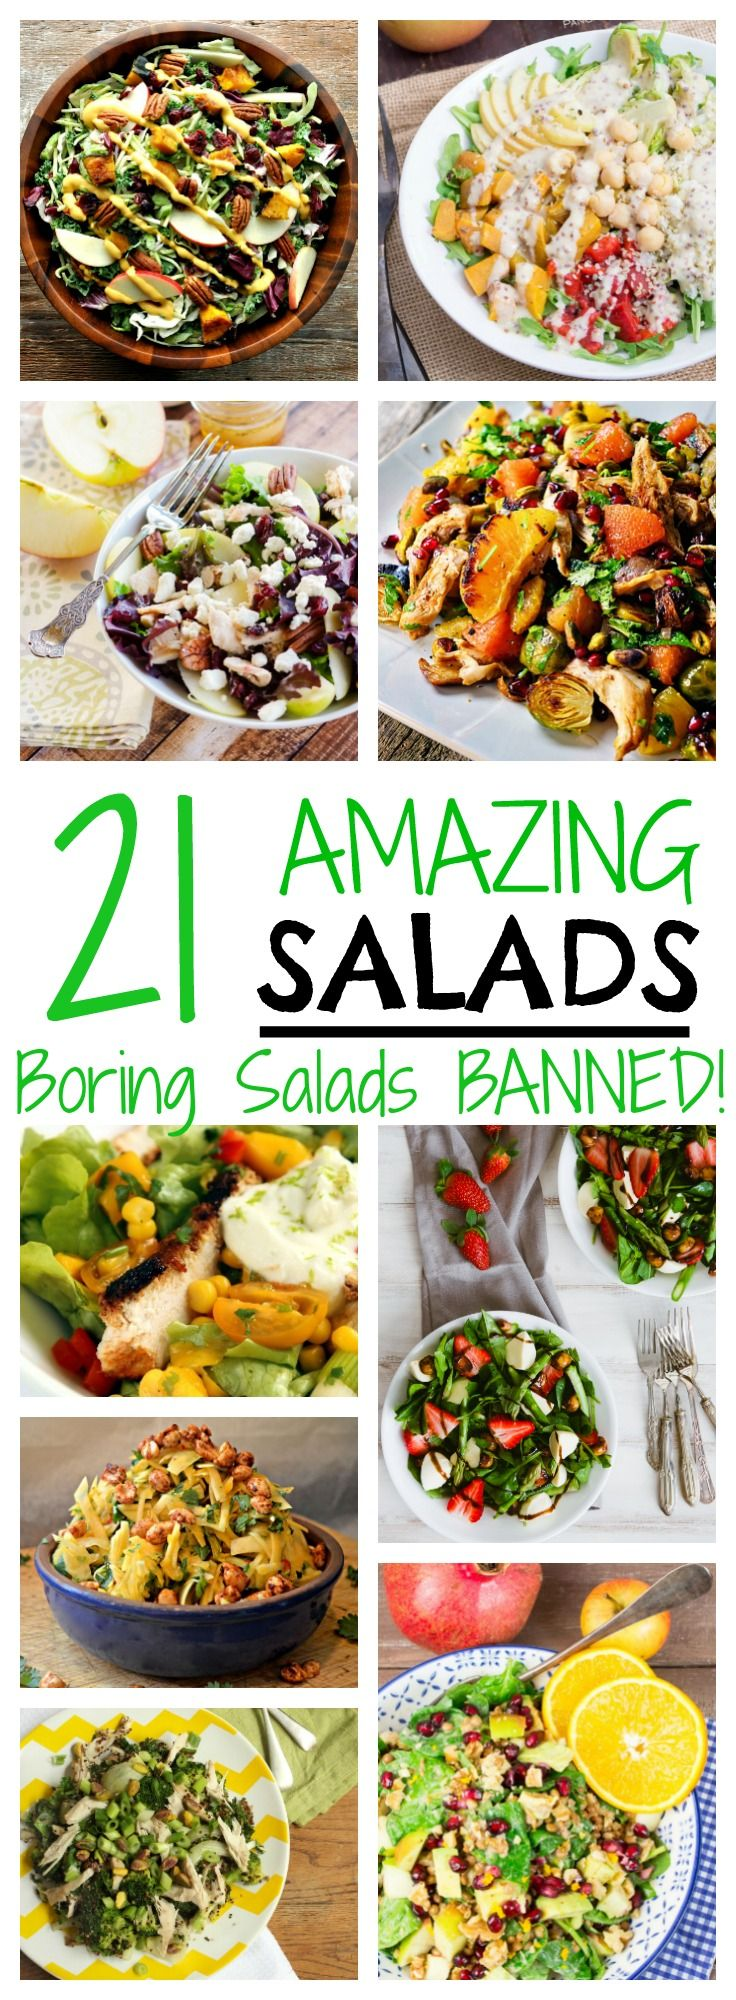 21 Amazing Salads; A collection of amazing salads that will inspire you to eat healthy- boring salads are banned!